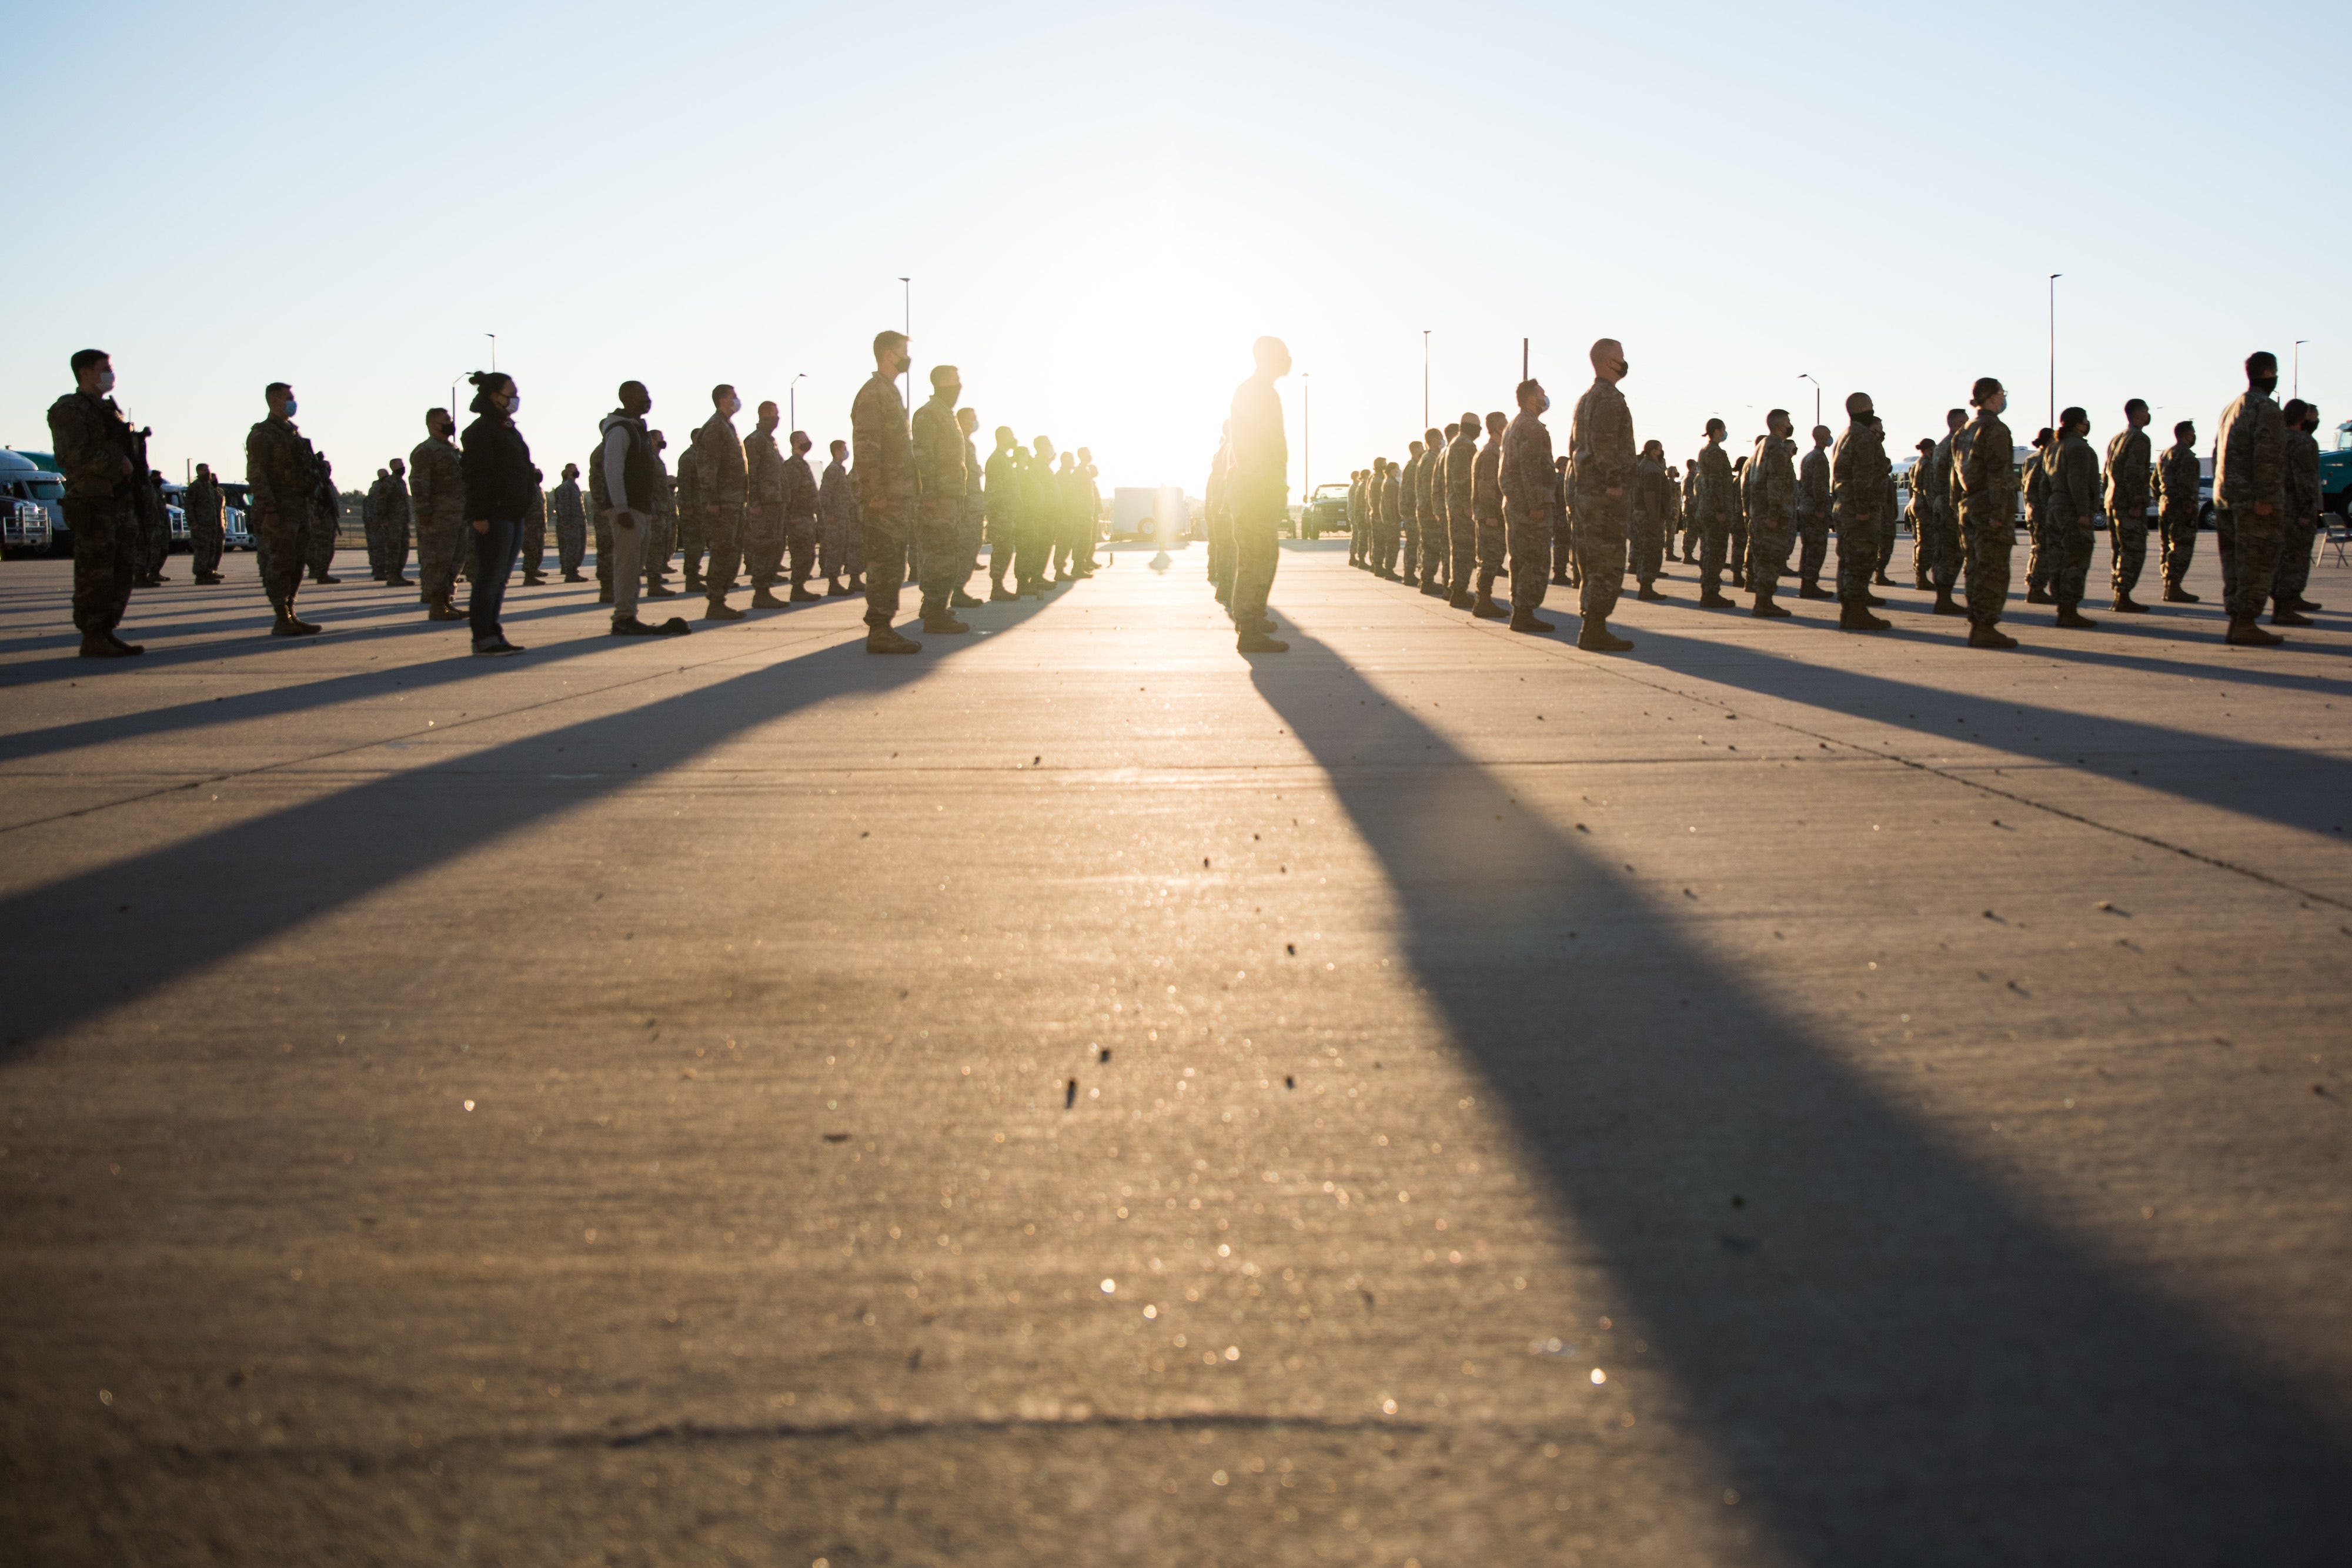 Airmen assigned to the newly activated 253rd Command and Control Group, Wyoming Air National Guard, stand in formation at a ceremony conducted Sunday, Sept. 13, 2020, at their facility on F.E. Warren Air Force Base, Cheyenne, Wyo. The Wyoming Air National Guard's 153rd Airlift Wing activated the 253rd Command and Control Group, 253rd Security Forces Squadron and the 253rd Support Squadron. The ceremony also featured assumptions of command for the new units and the re-aligned 153rd Command and Control Squadron.